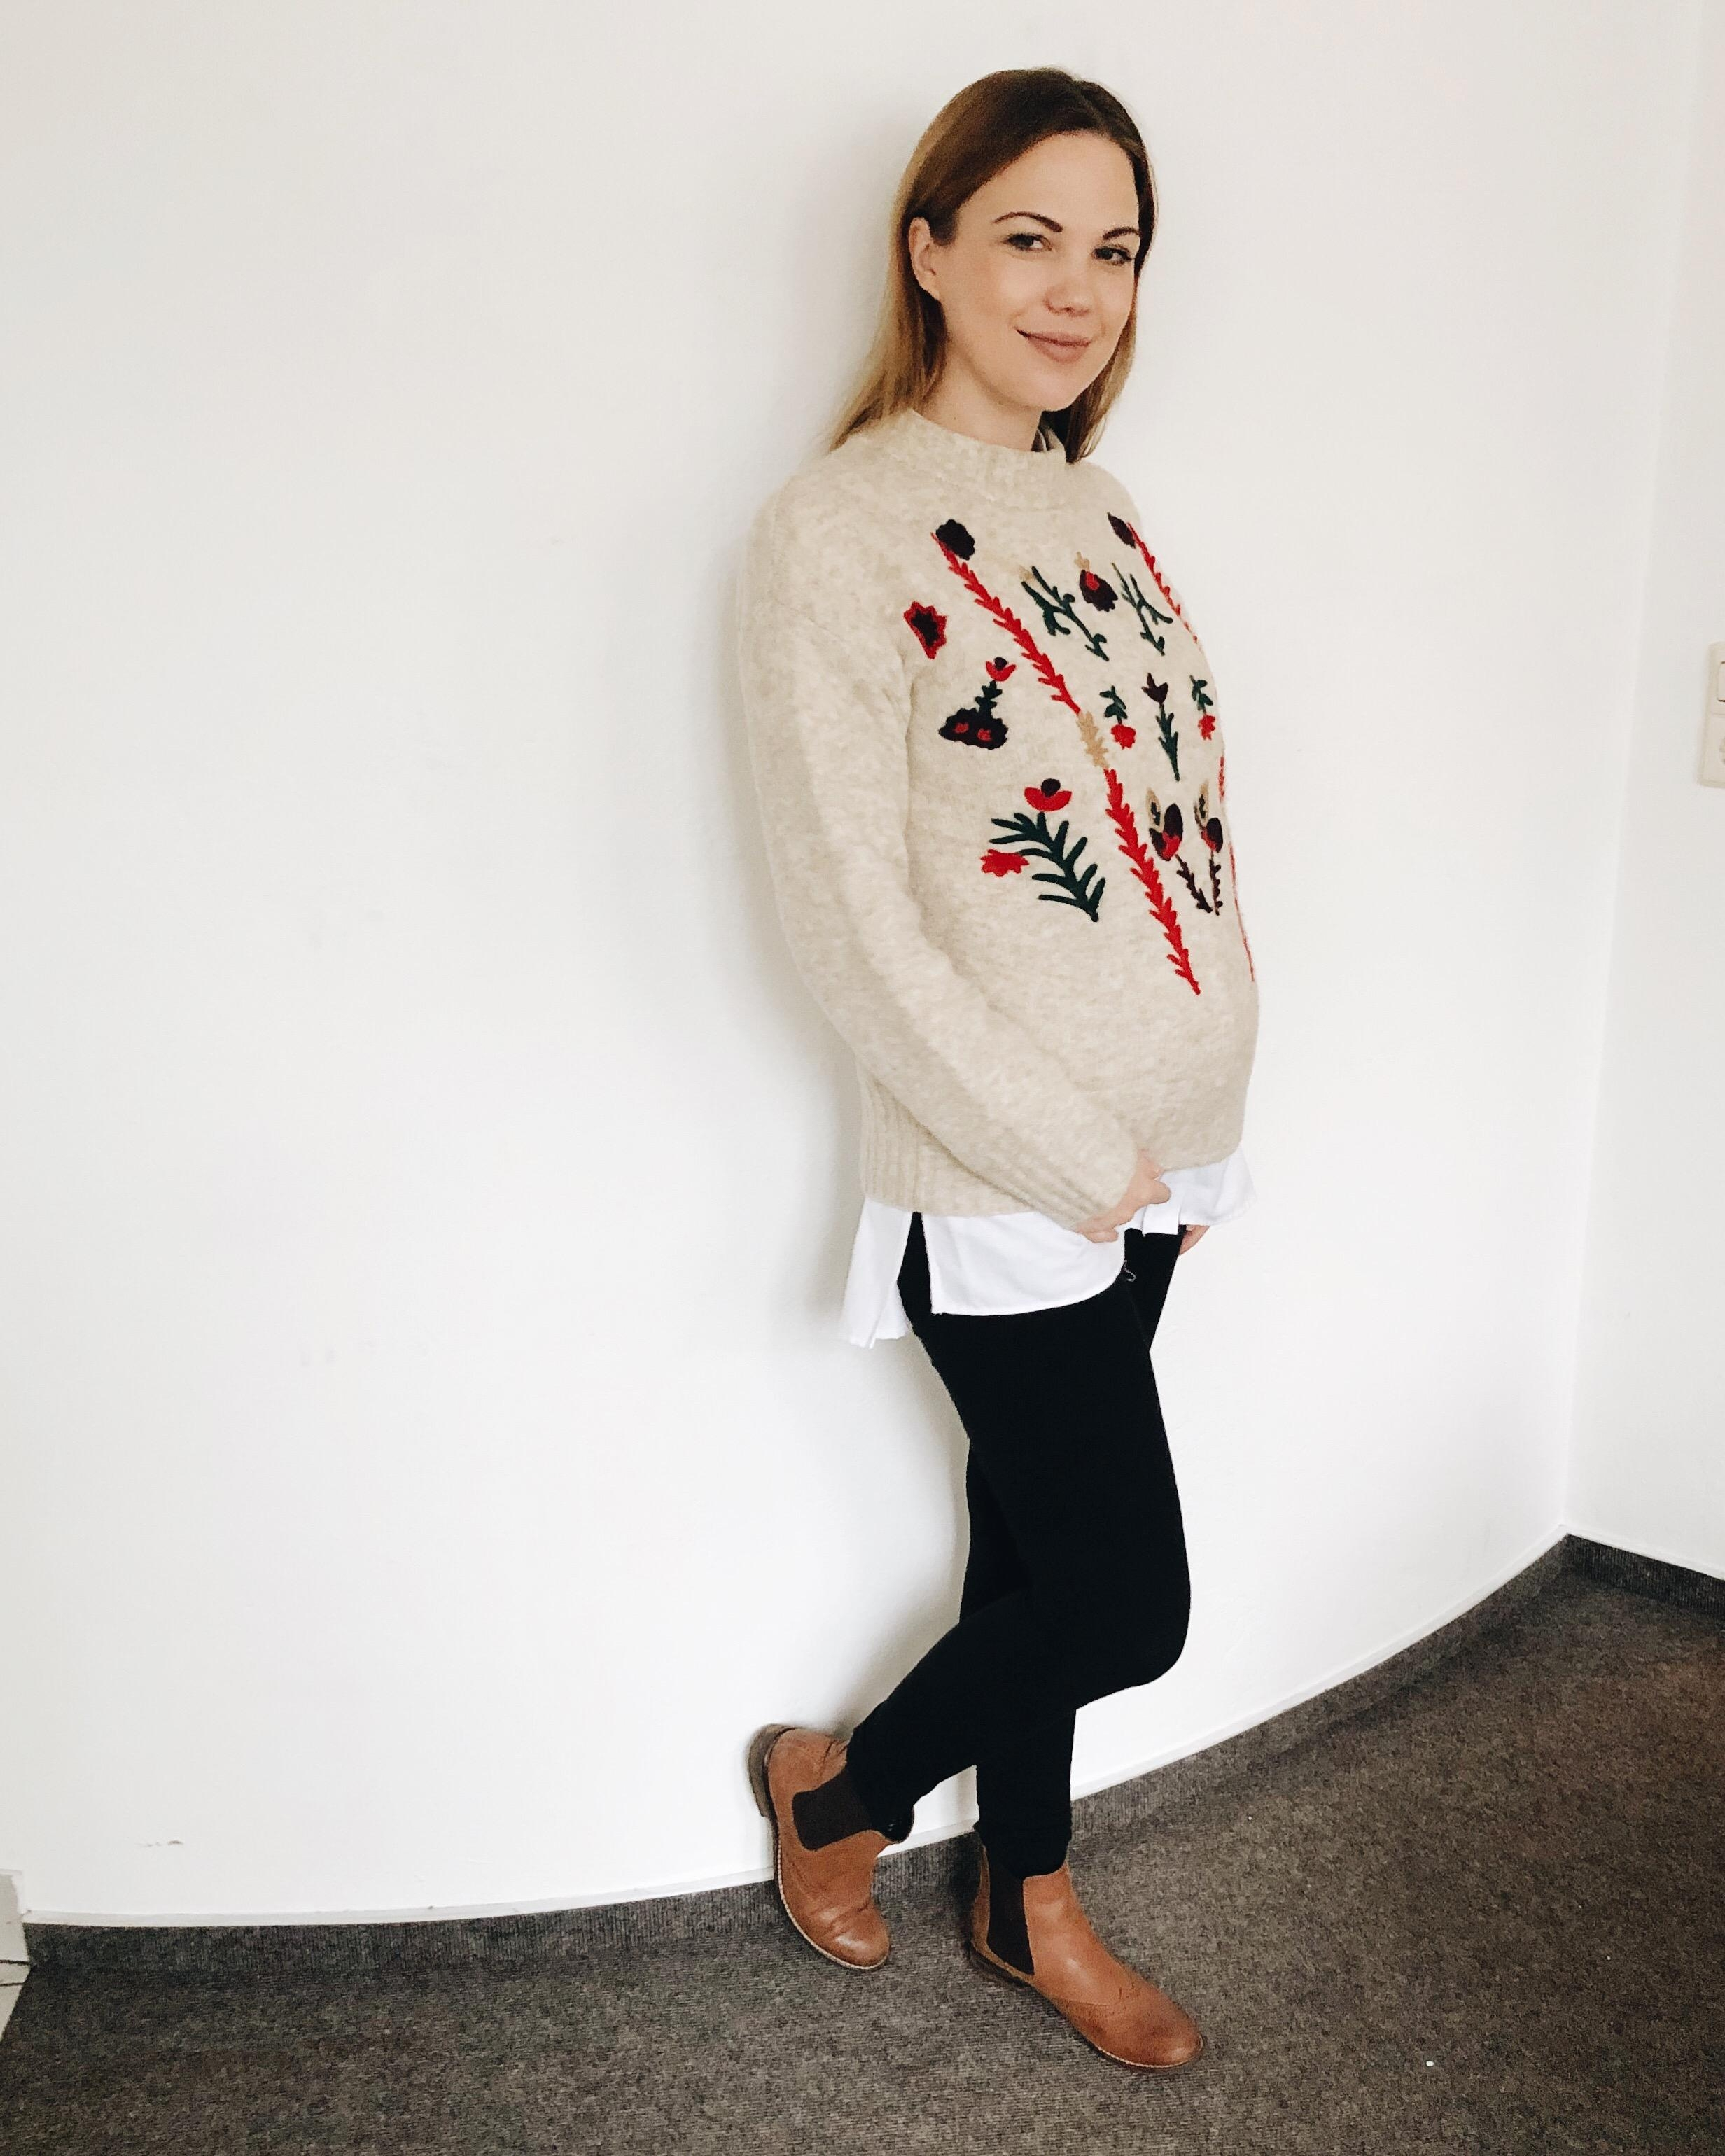 Belly getting bigger 🤰 #ootd #pregnantfashion #winterlook #layering